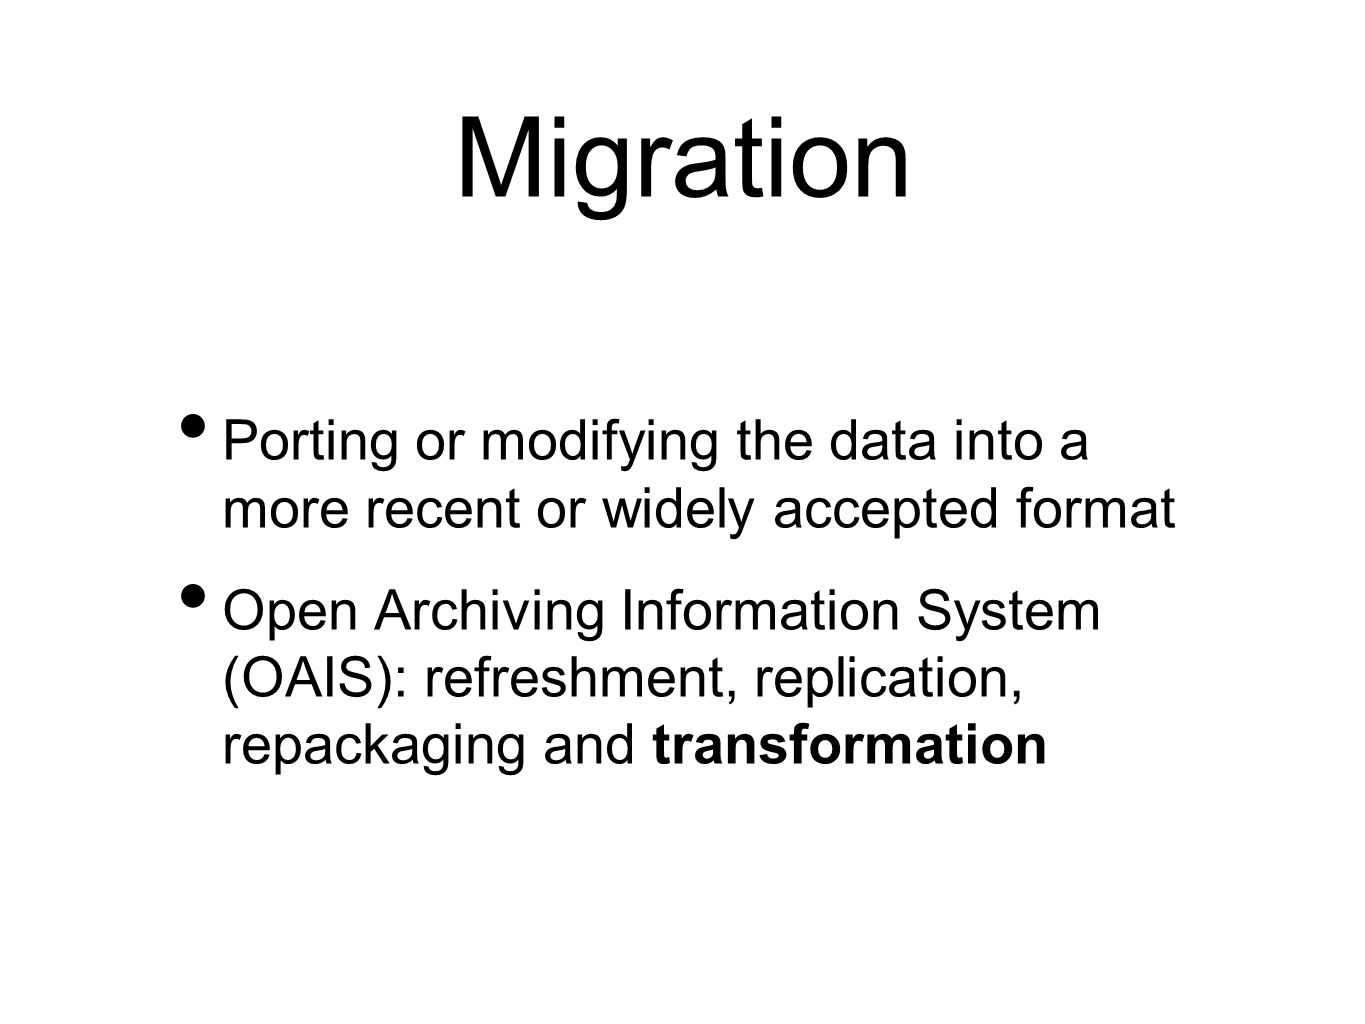 Migration Porting or modifying the data into a more recent or widely accepted format Open Archiving Information System (OAIS): refreshment, replicatio